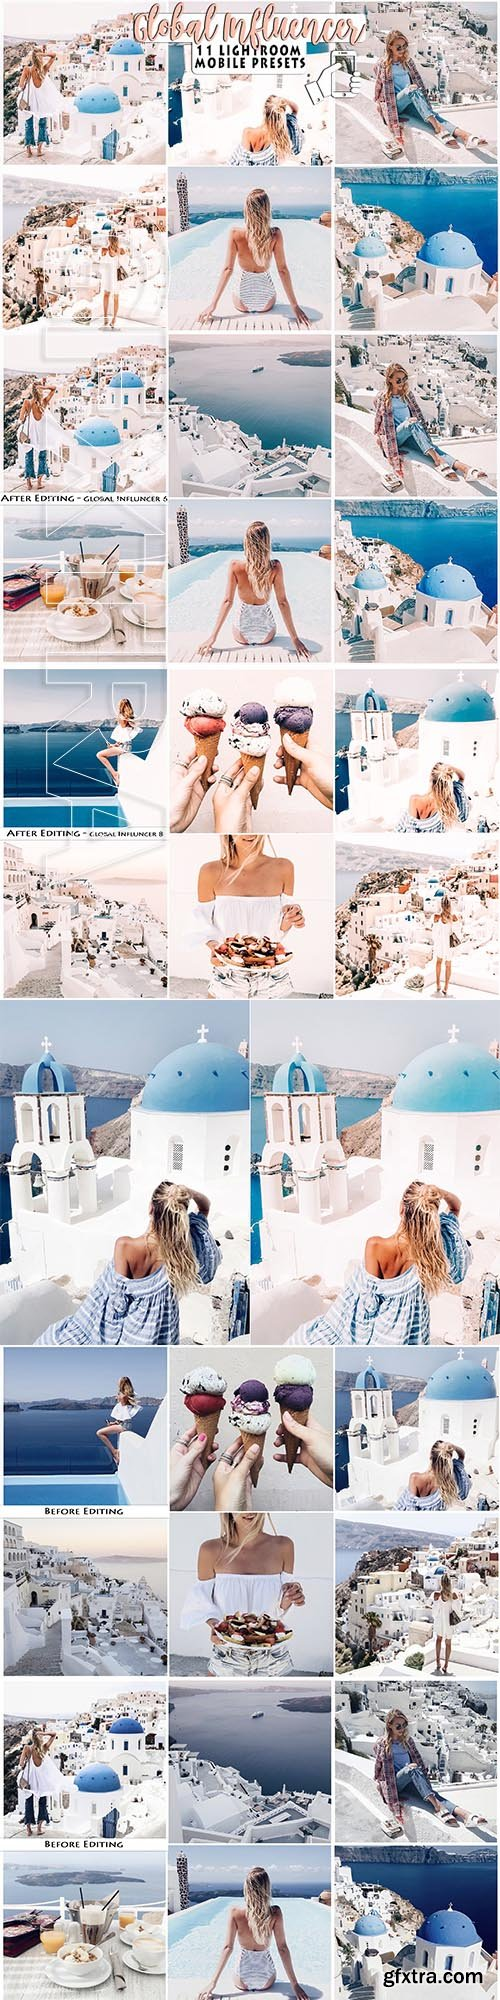 CreativeMarket - Blogger Influencer Lightroom Presets 3328751